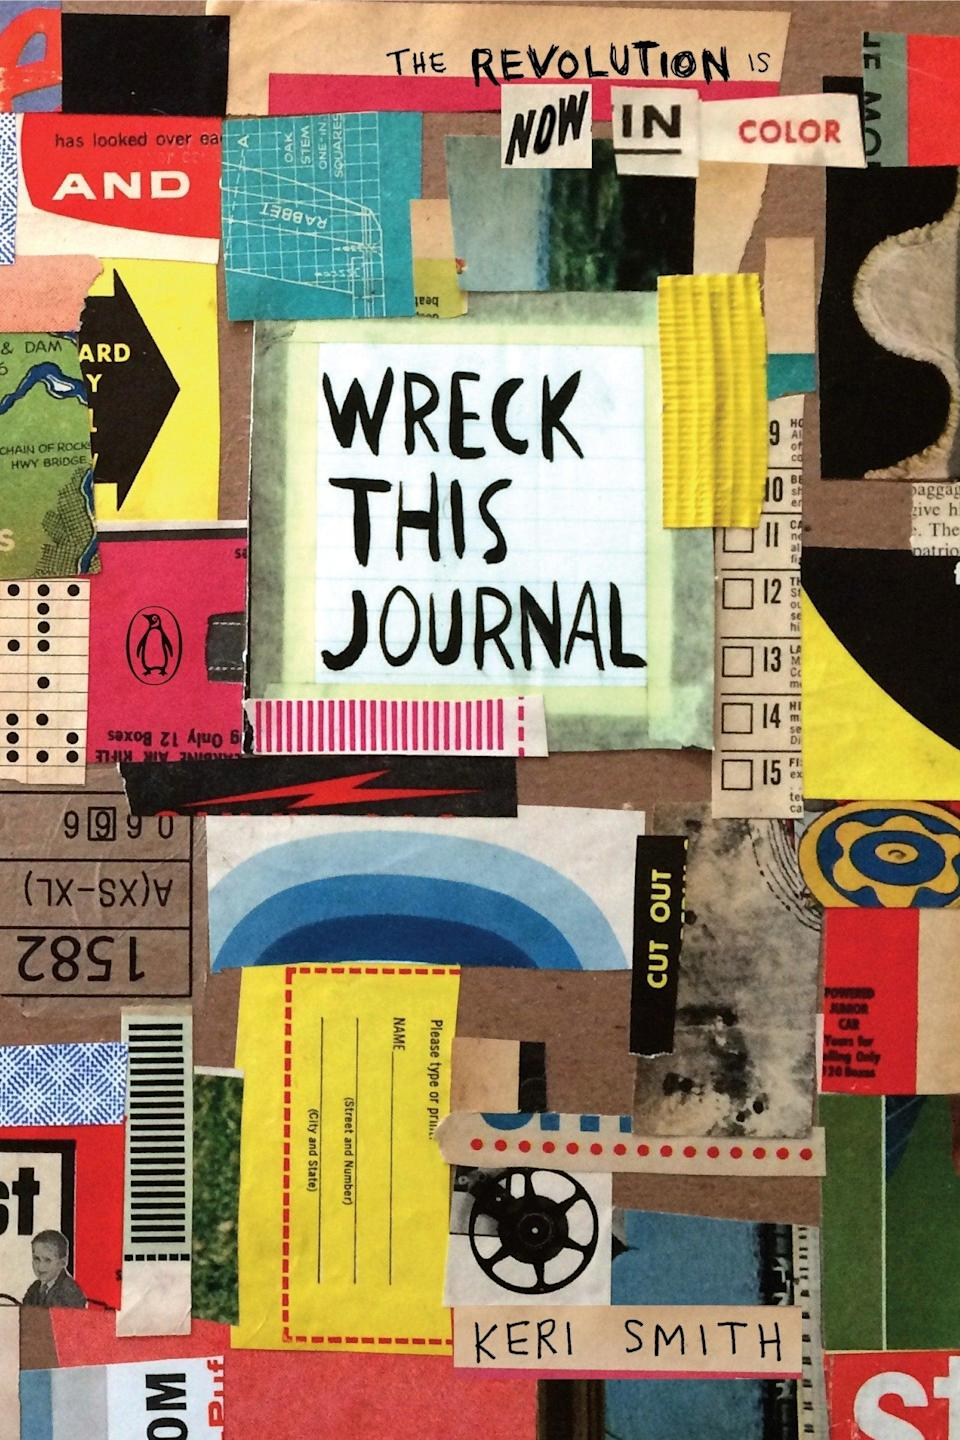 """<h2>Keri Smith's """"Wreck This Journal""""</h2><br>A journal filled with colorful creative exercises is the perfect way to help anyone kick off a better 2021. <br><br><strong>Penguin Books</strong> Wreck This Journal, $, available at <a href=""""https://www.amazon.com/gp/product/0143131664"""" rel=""""nofollow noopener"""" target=""""_blank"""" data-ylk=""""slk:Amazon"""" class=""""link rapid-noclick-resp"""">Amazon</a>"""